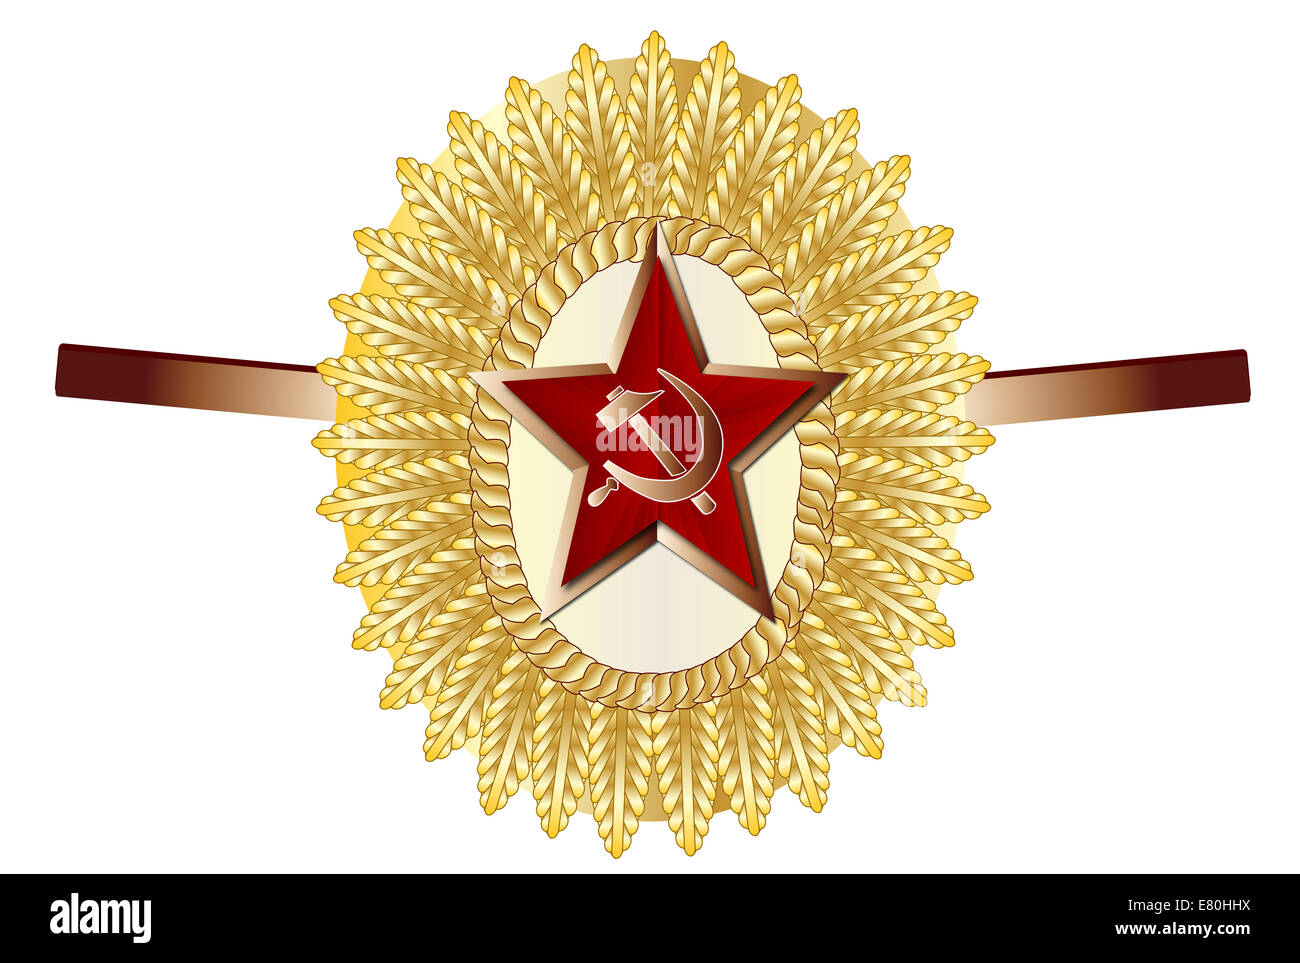 A Russian officer army enamel pin cap badge - Stock Image